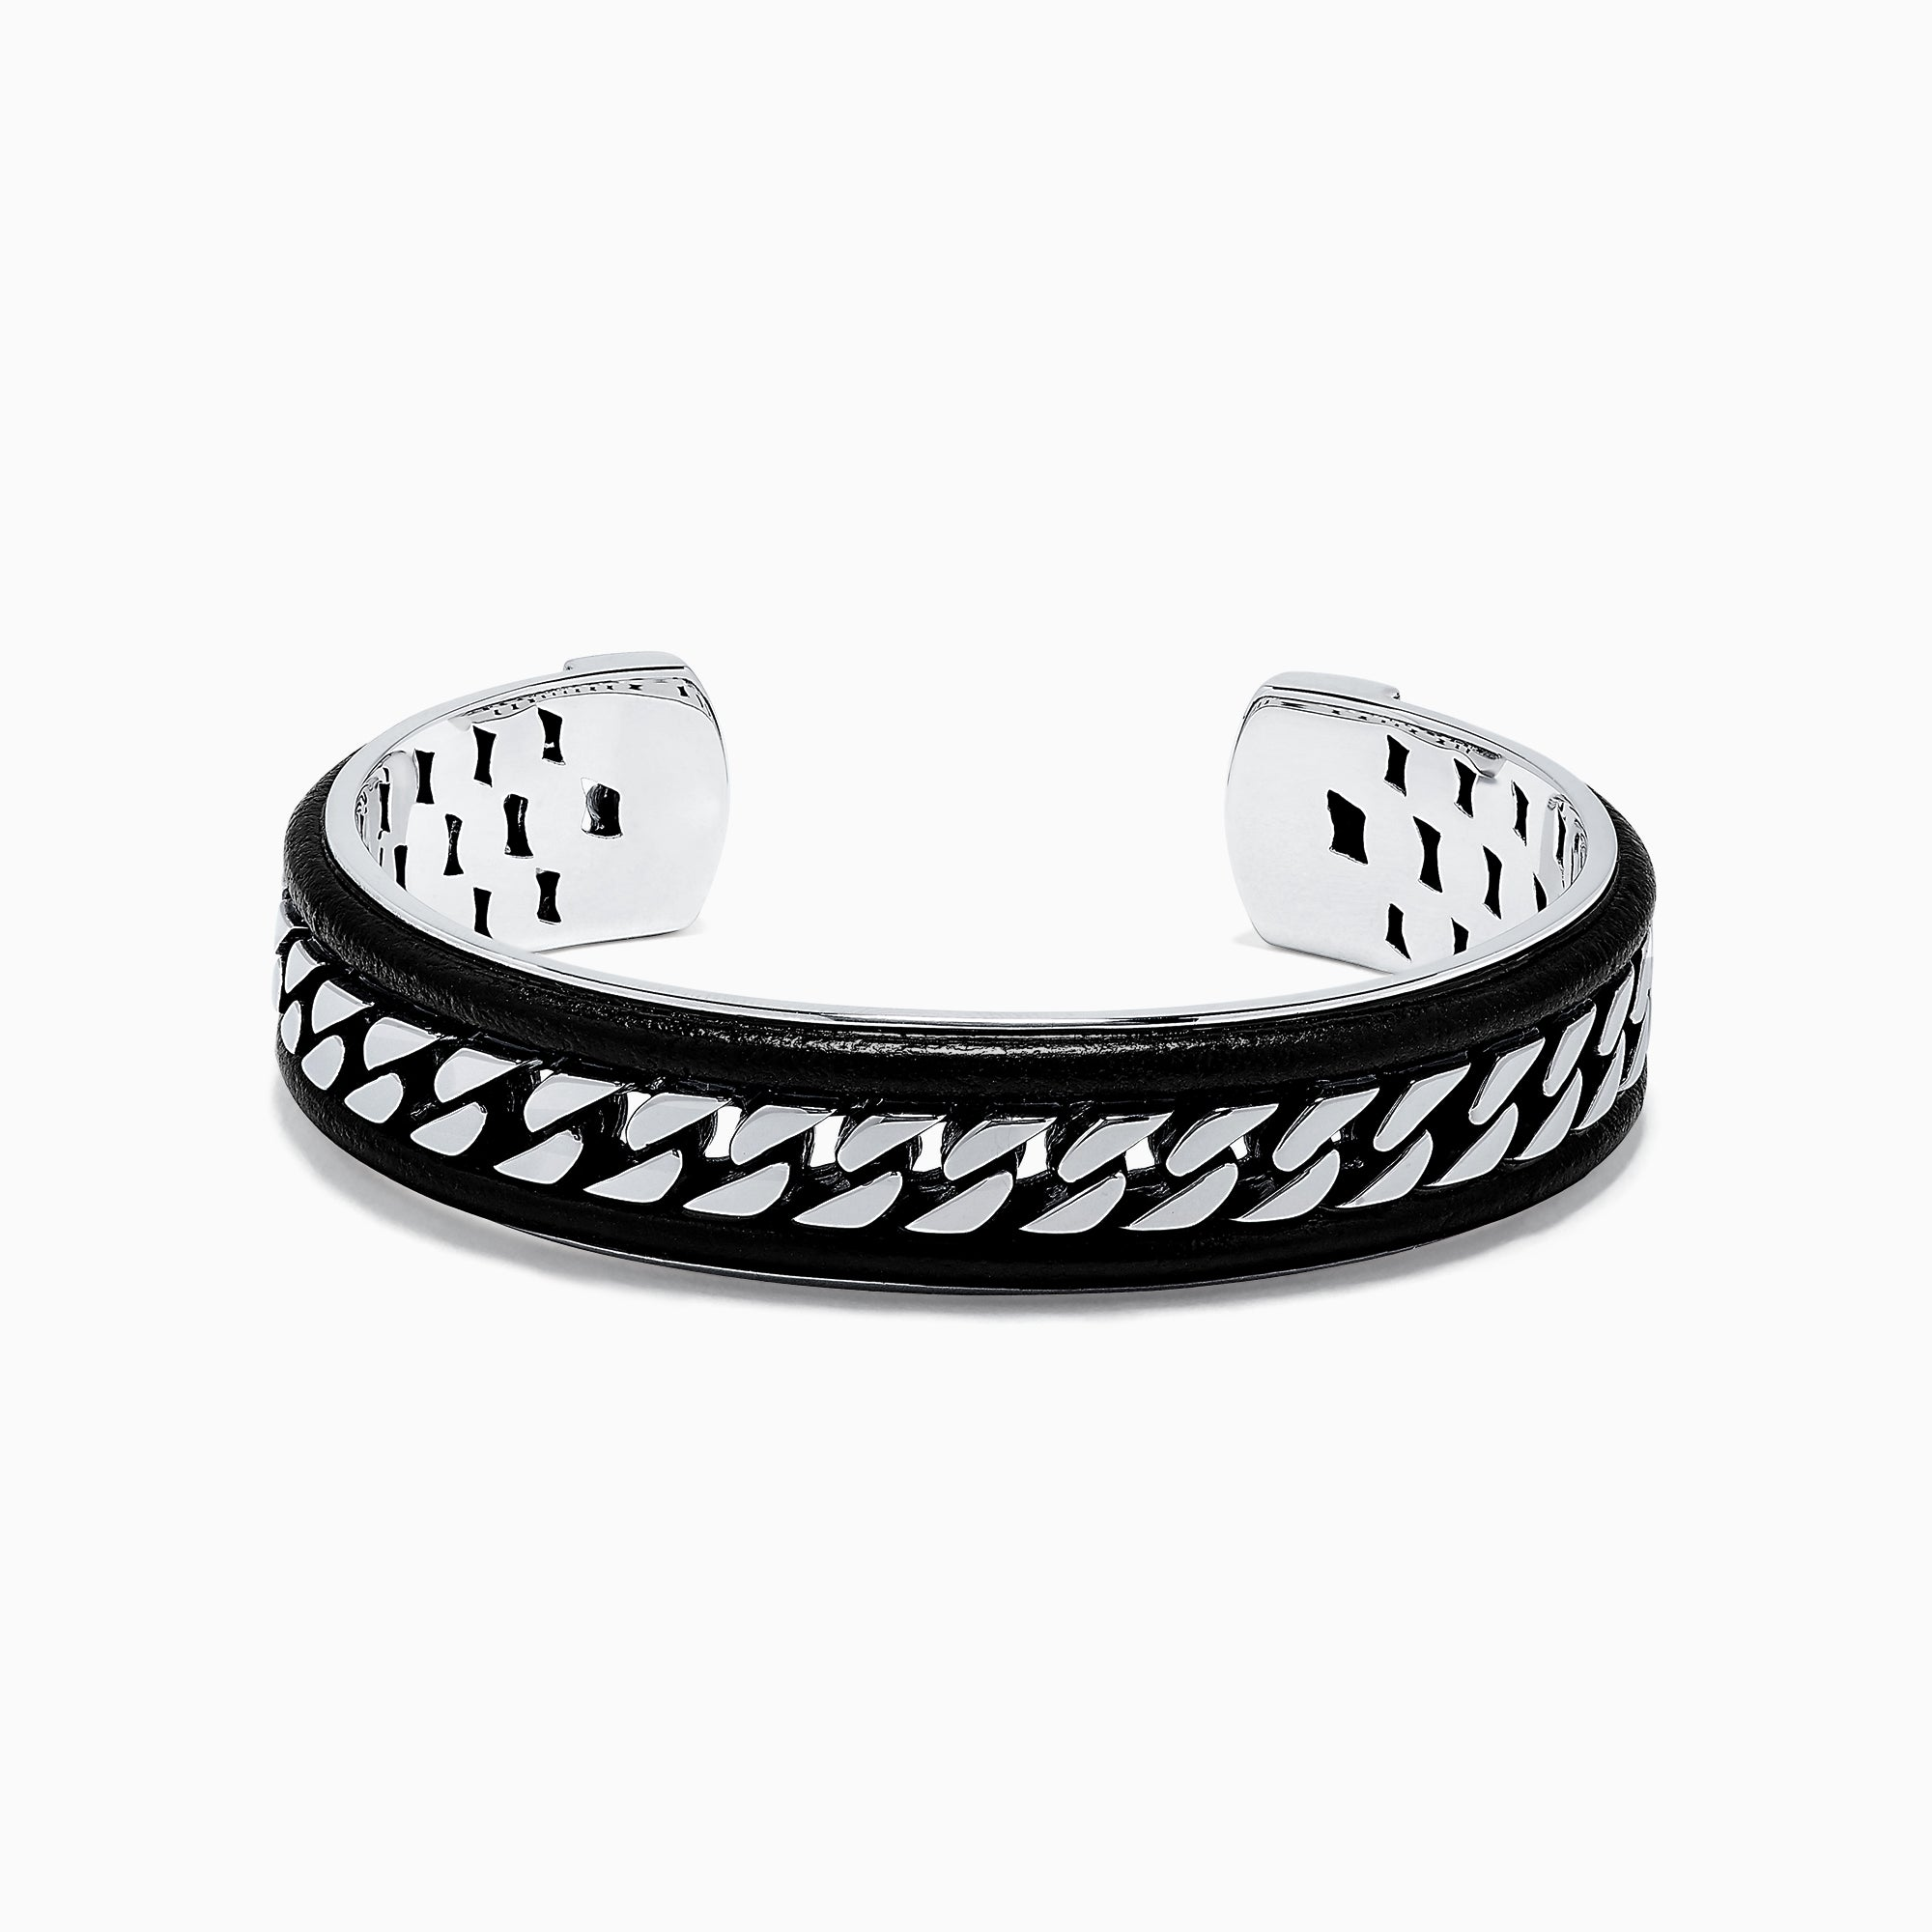 Effy Men's Sterling Silver and Leather Bracelet